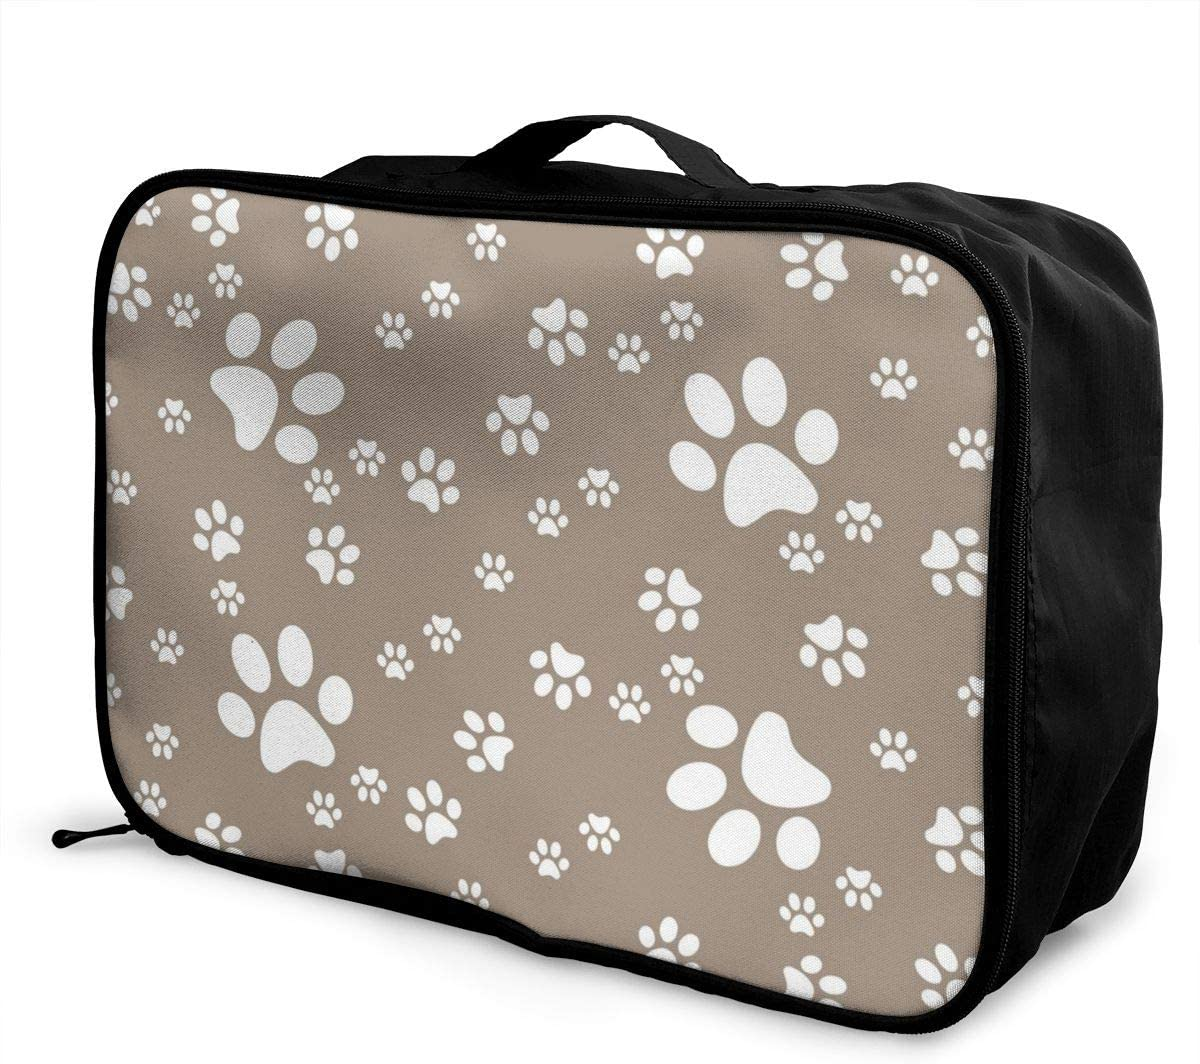 Yunshm Paws Brown Pattern Paw Background Vector Image Customized Trolley Handbag Waterproof Unisex Large Capacity For Business Travel Storage